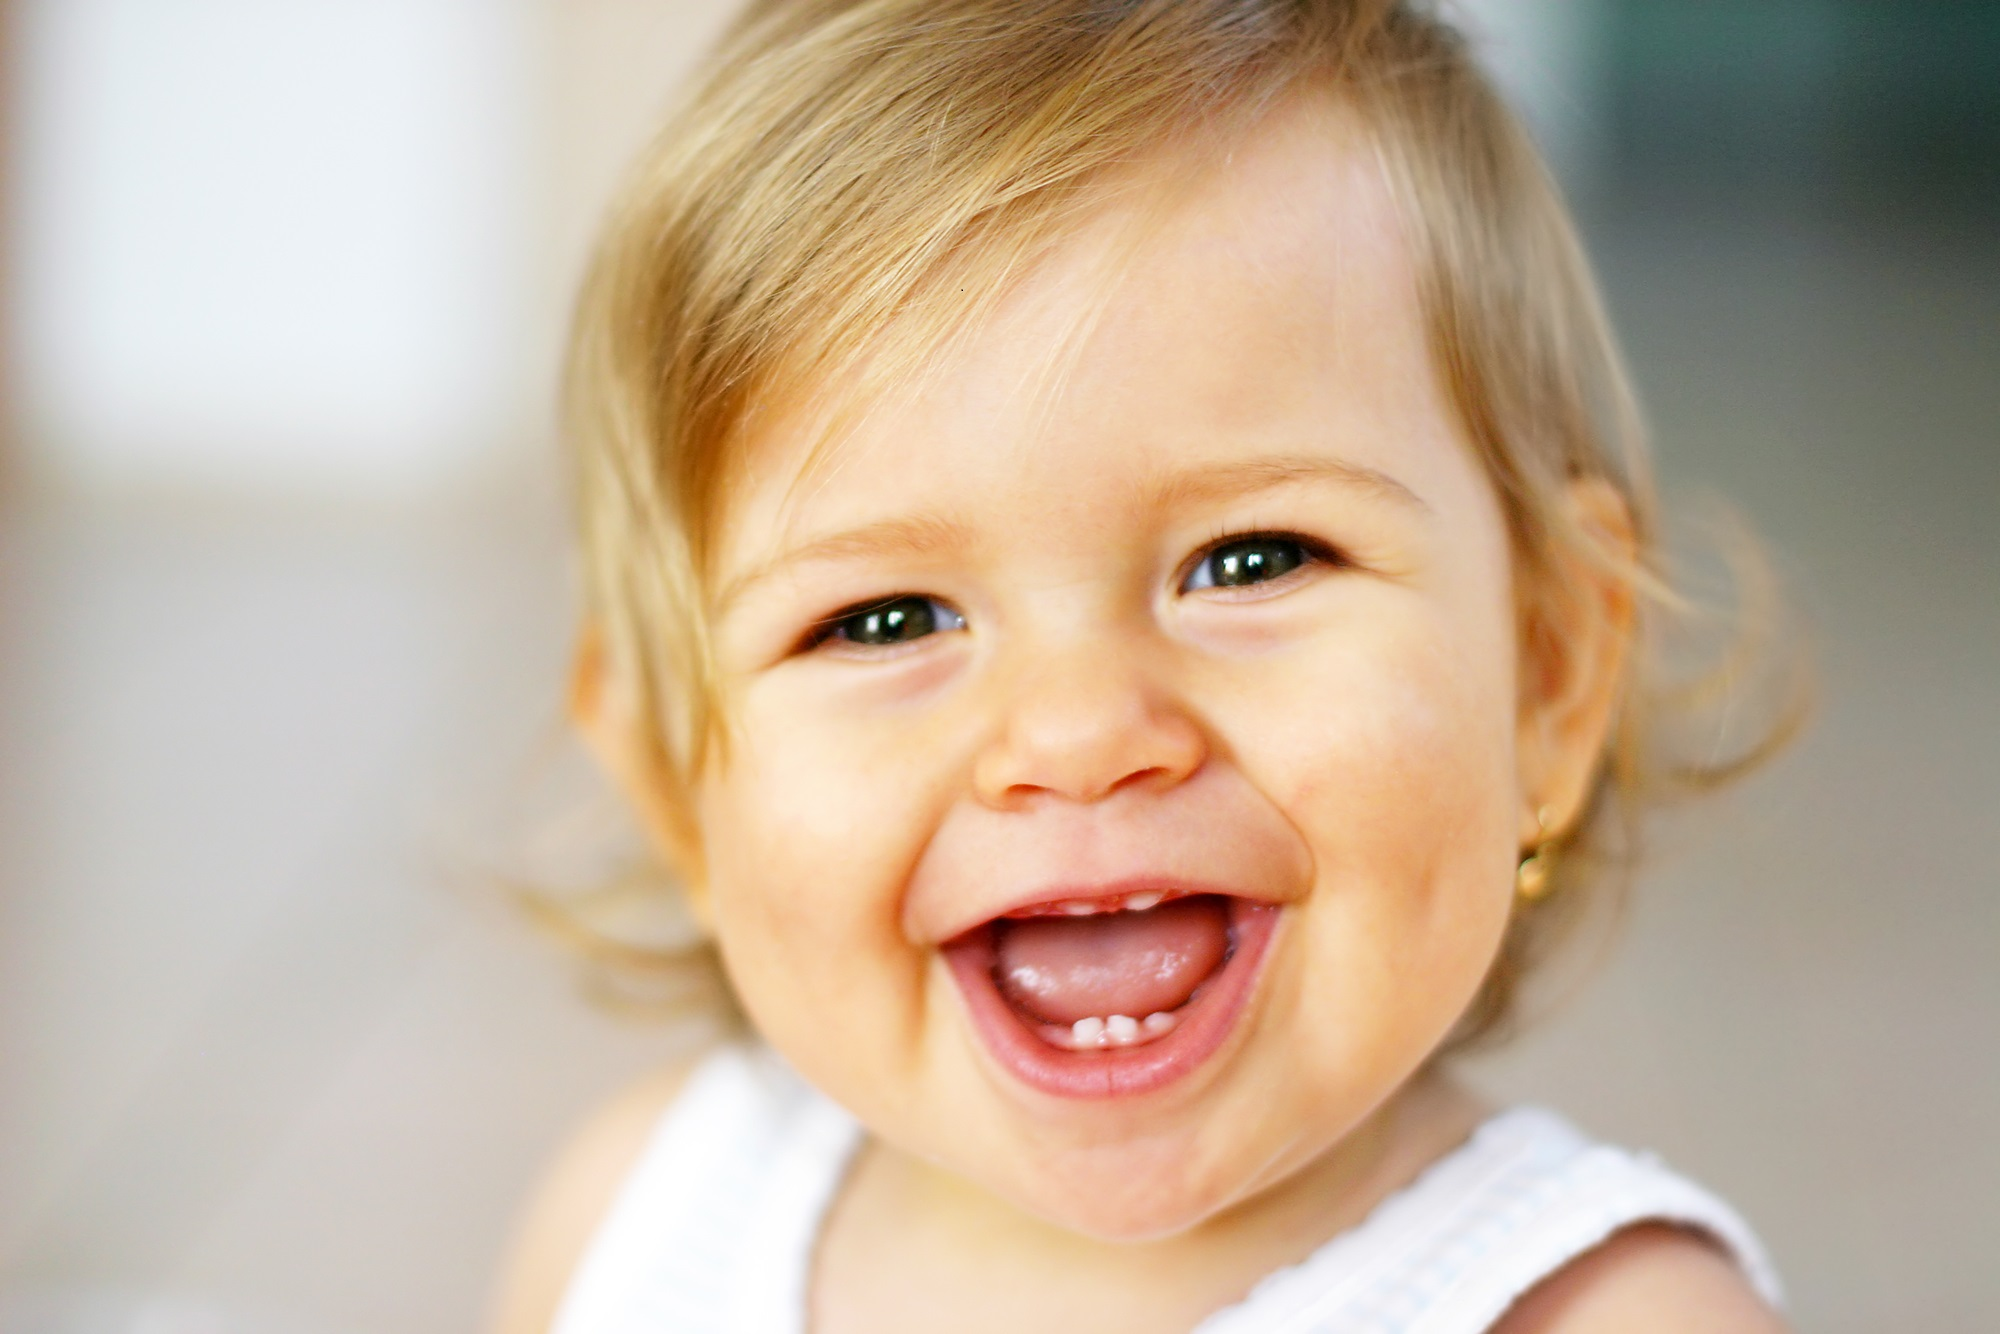 Portrait of cute baby laughing